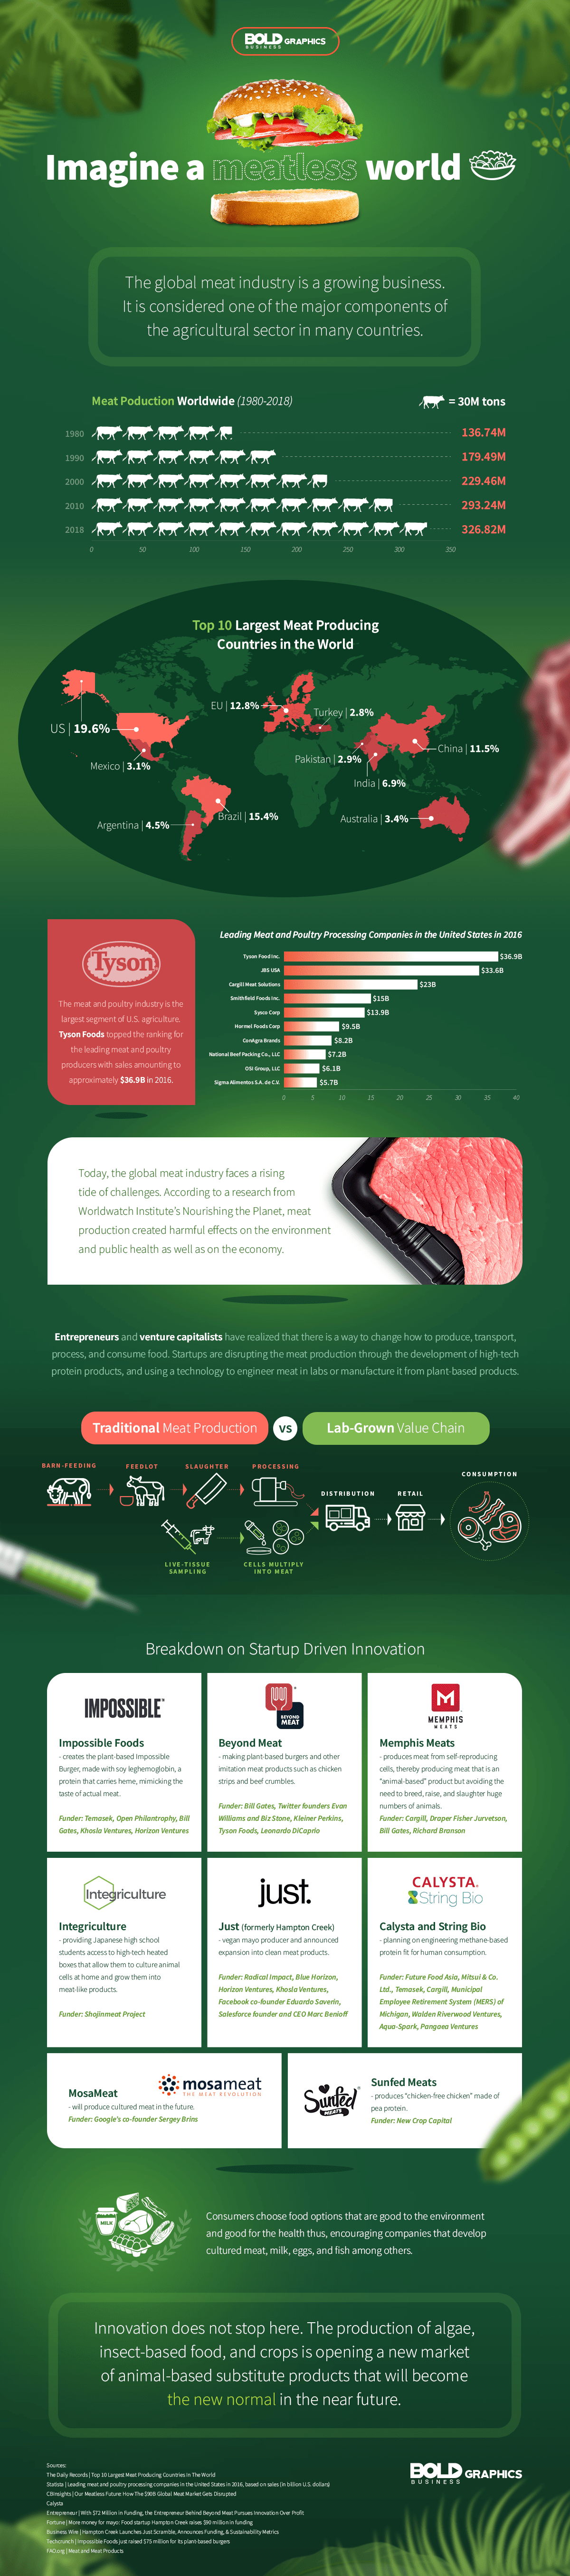 meatless industry facts infographic